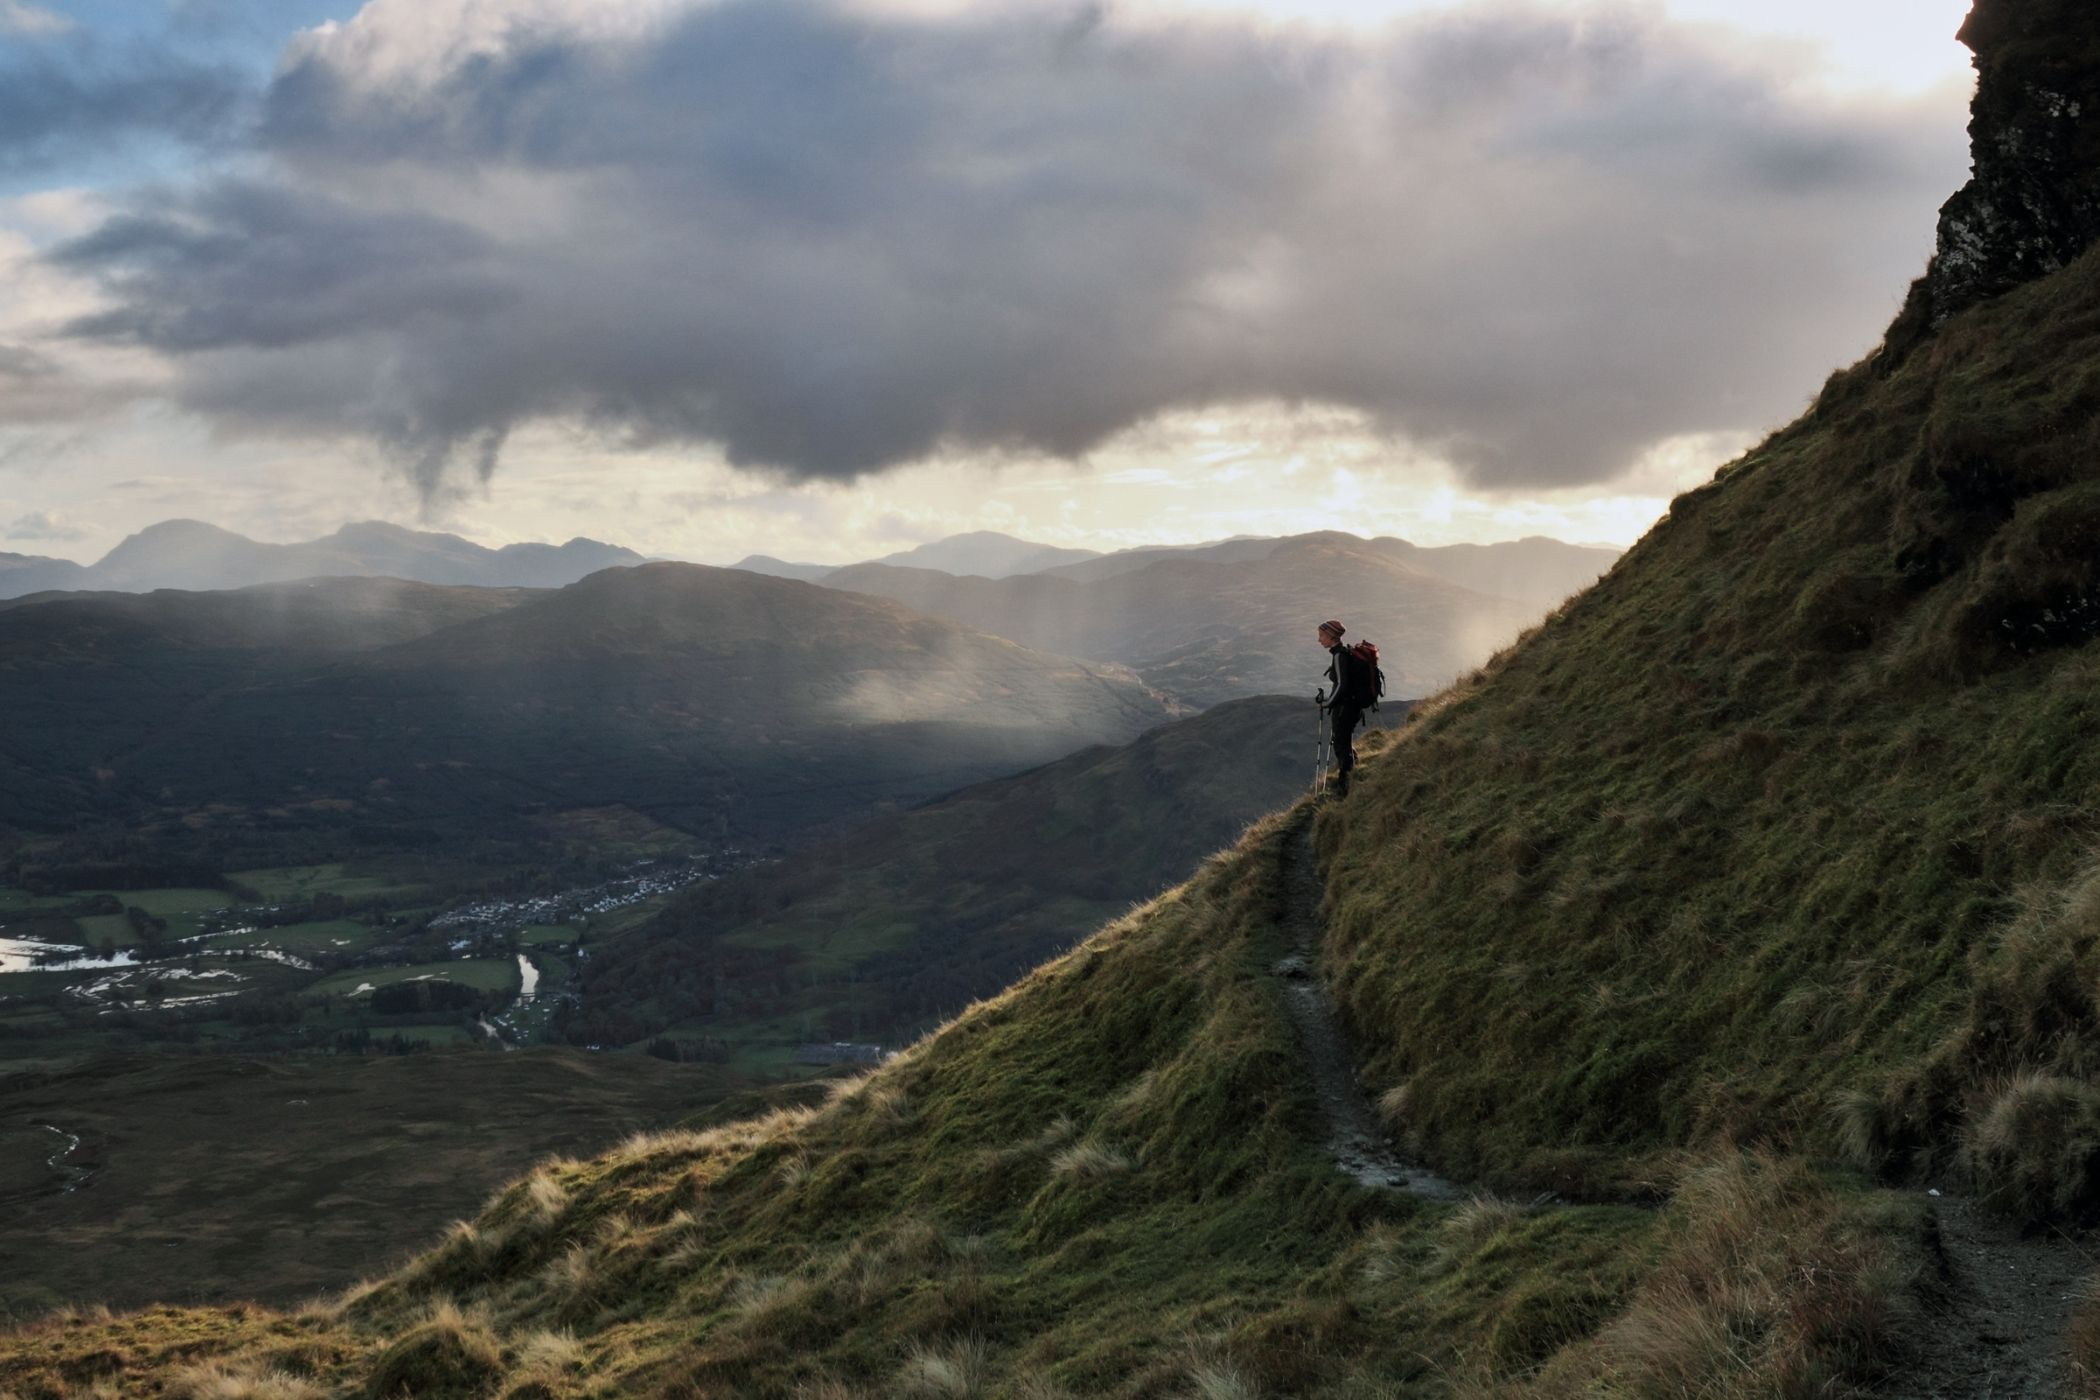 Waling and Hiking in the Scottish Highlands